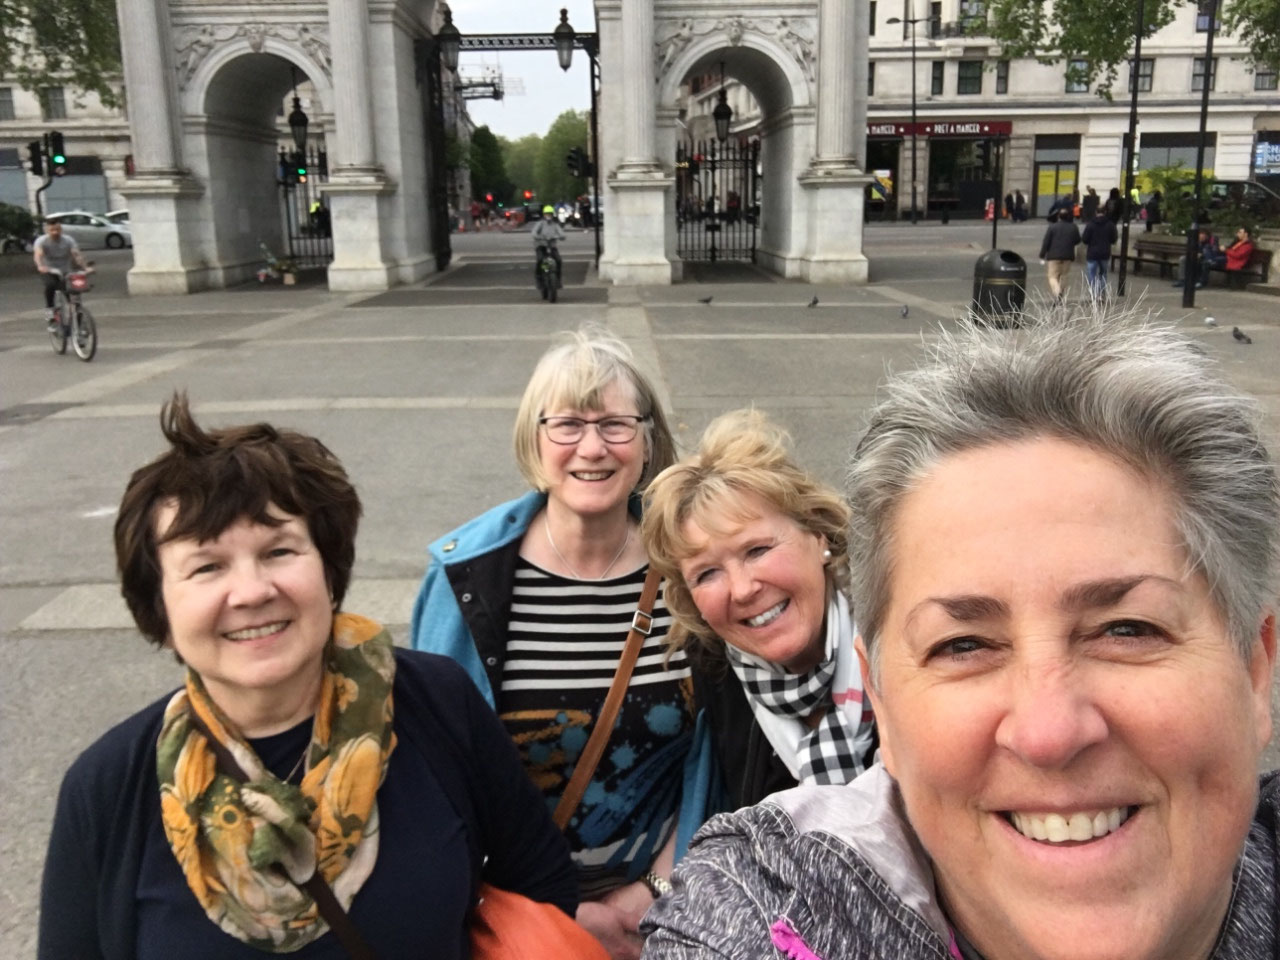 The gang at Marble Arch